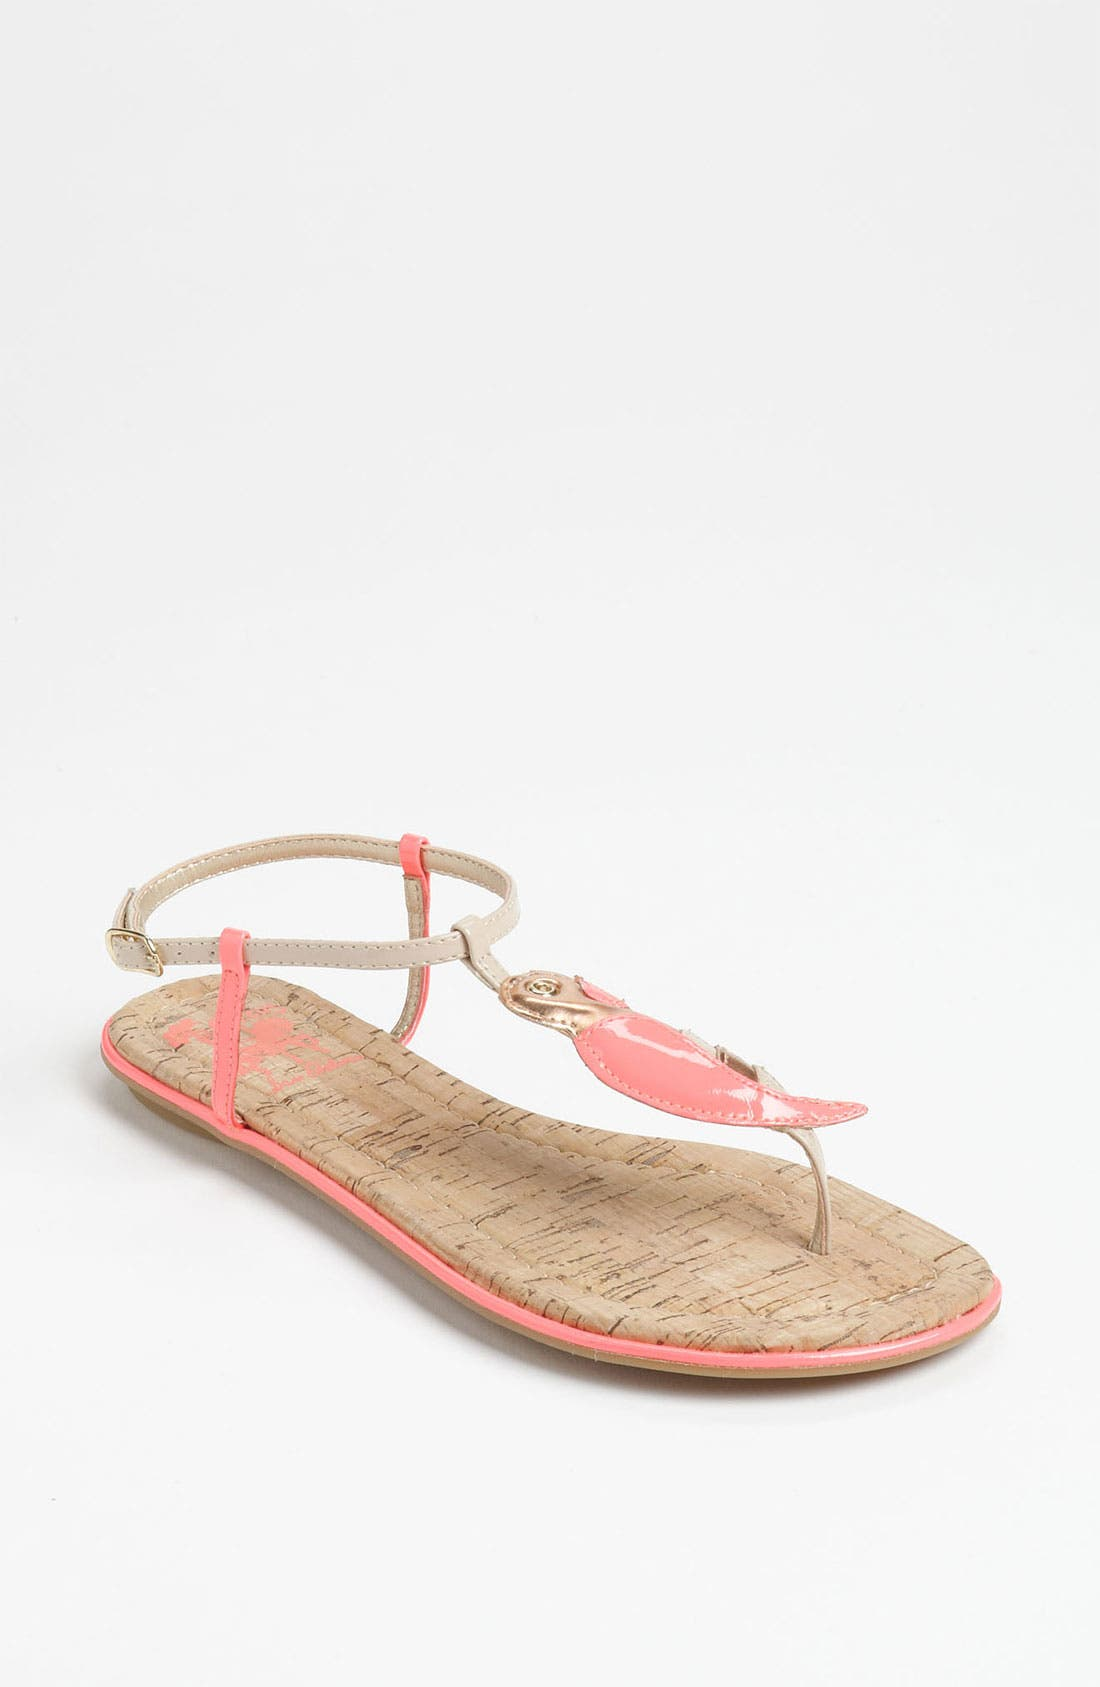 Alternate Image 1 Selected - Circus by Sam Edelman 'Sahara' Sandal